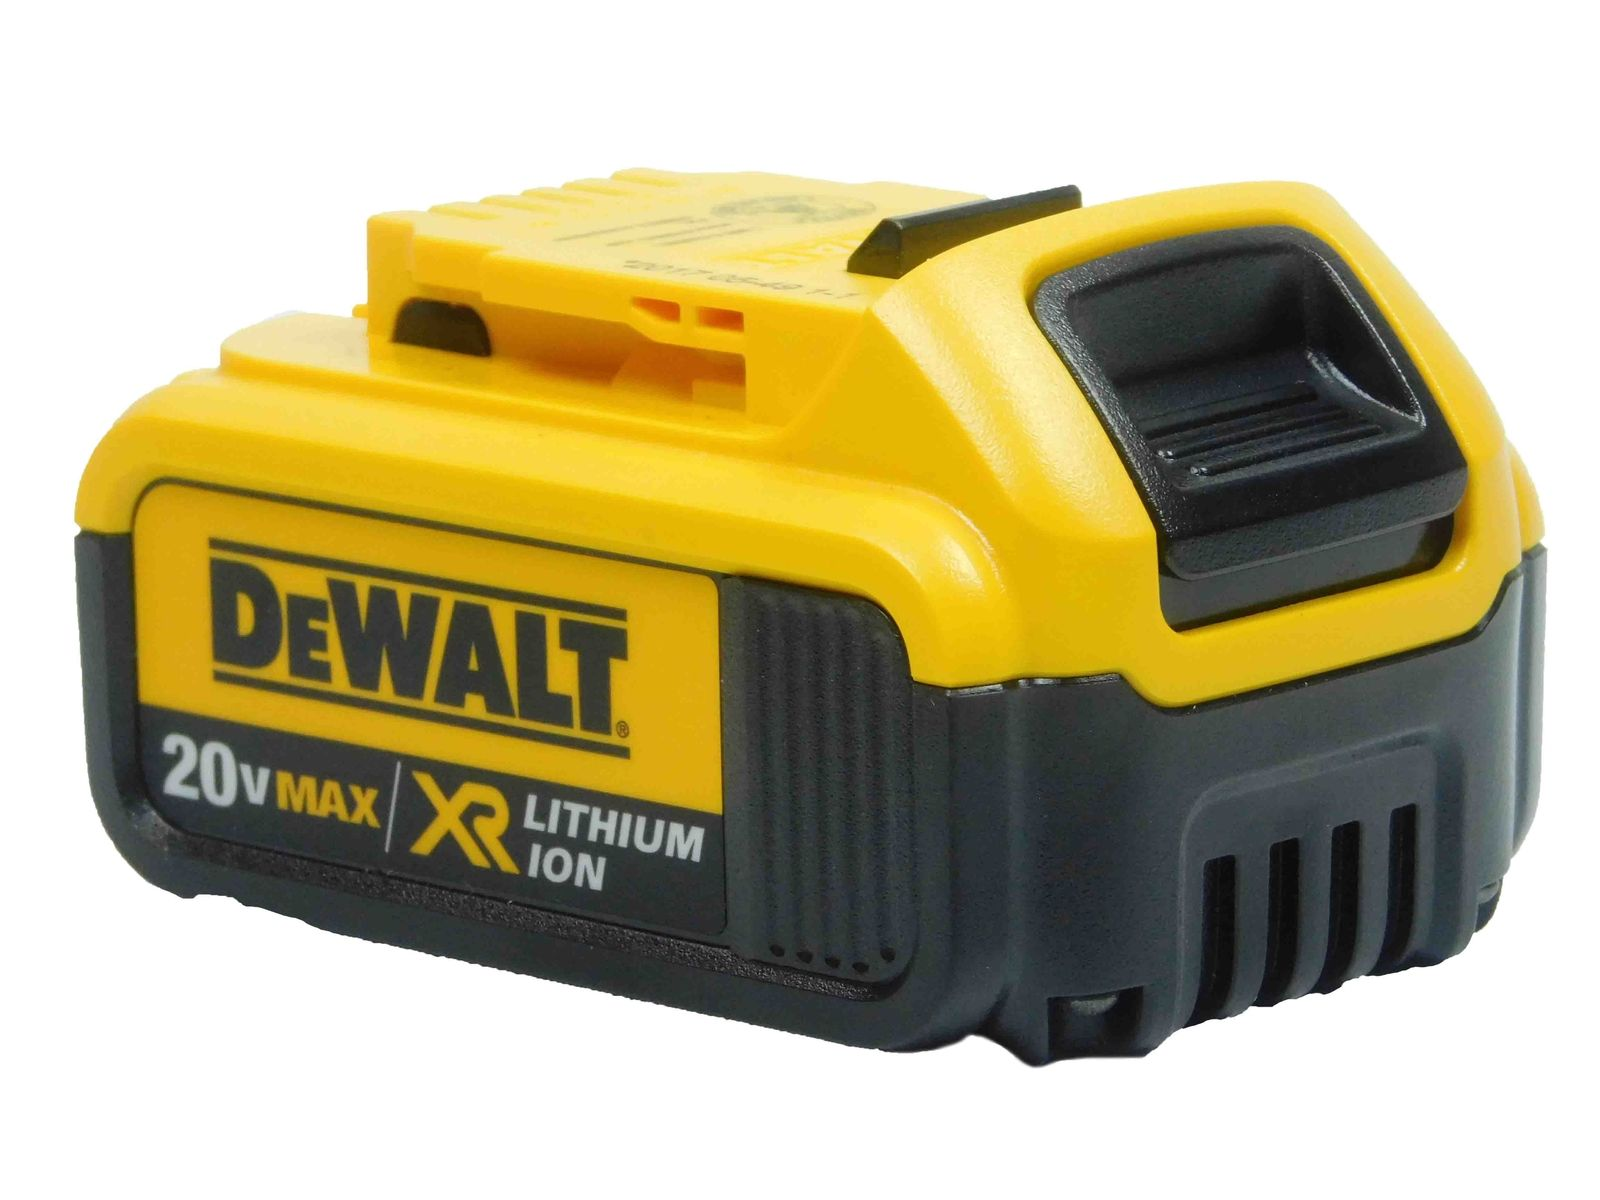 Dewalt-DCD791B-20V-1-2-Brushless-Drill-4Ah-DCB204-Lithium-Ion-Battery-image-4